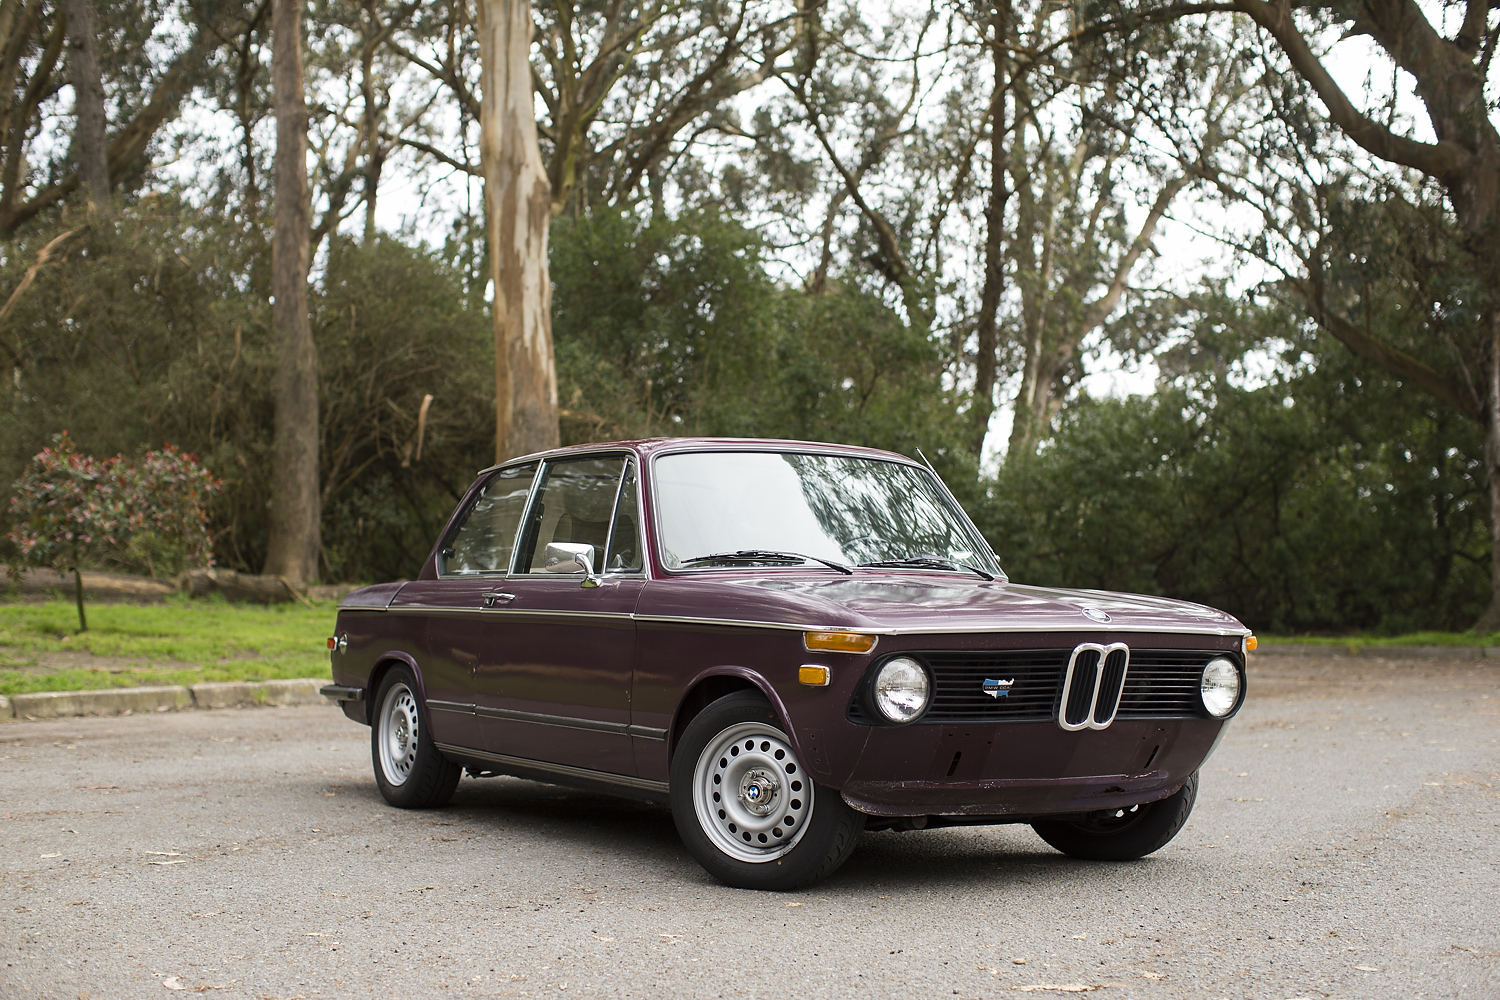 1974 bmw 2002 tii for sale cars for sale bmw 2002 faq. Black Bedroom Furniture Sets. Home Design Ideas